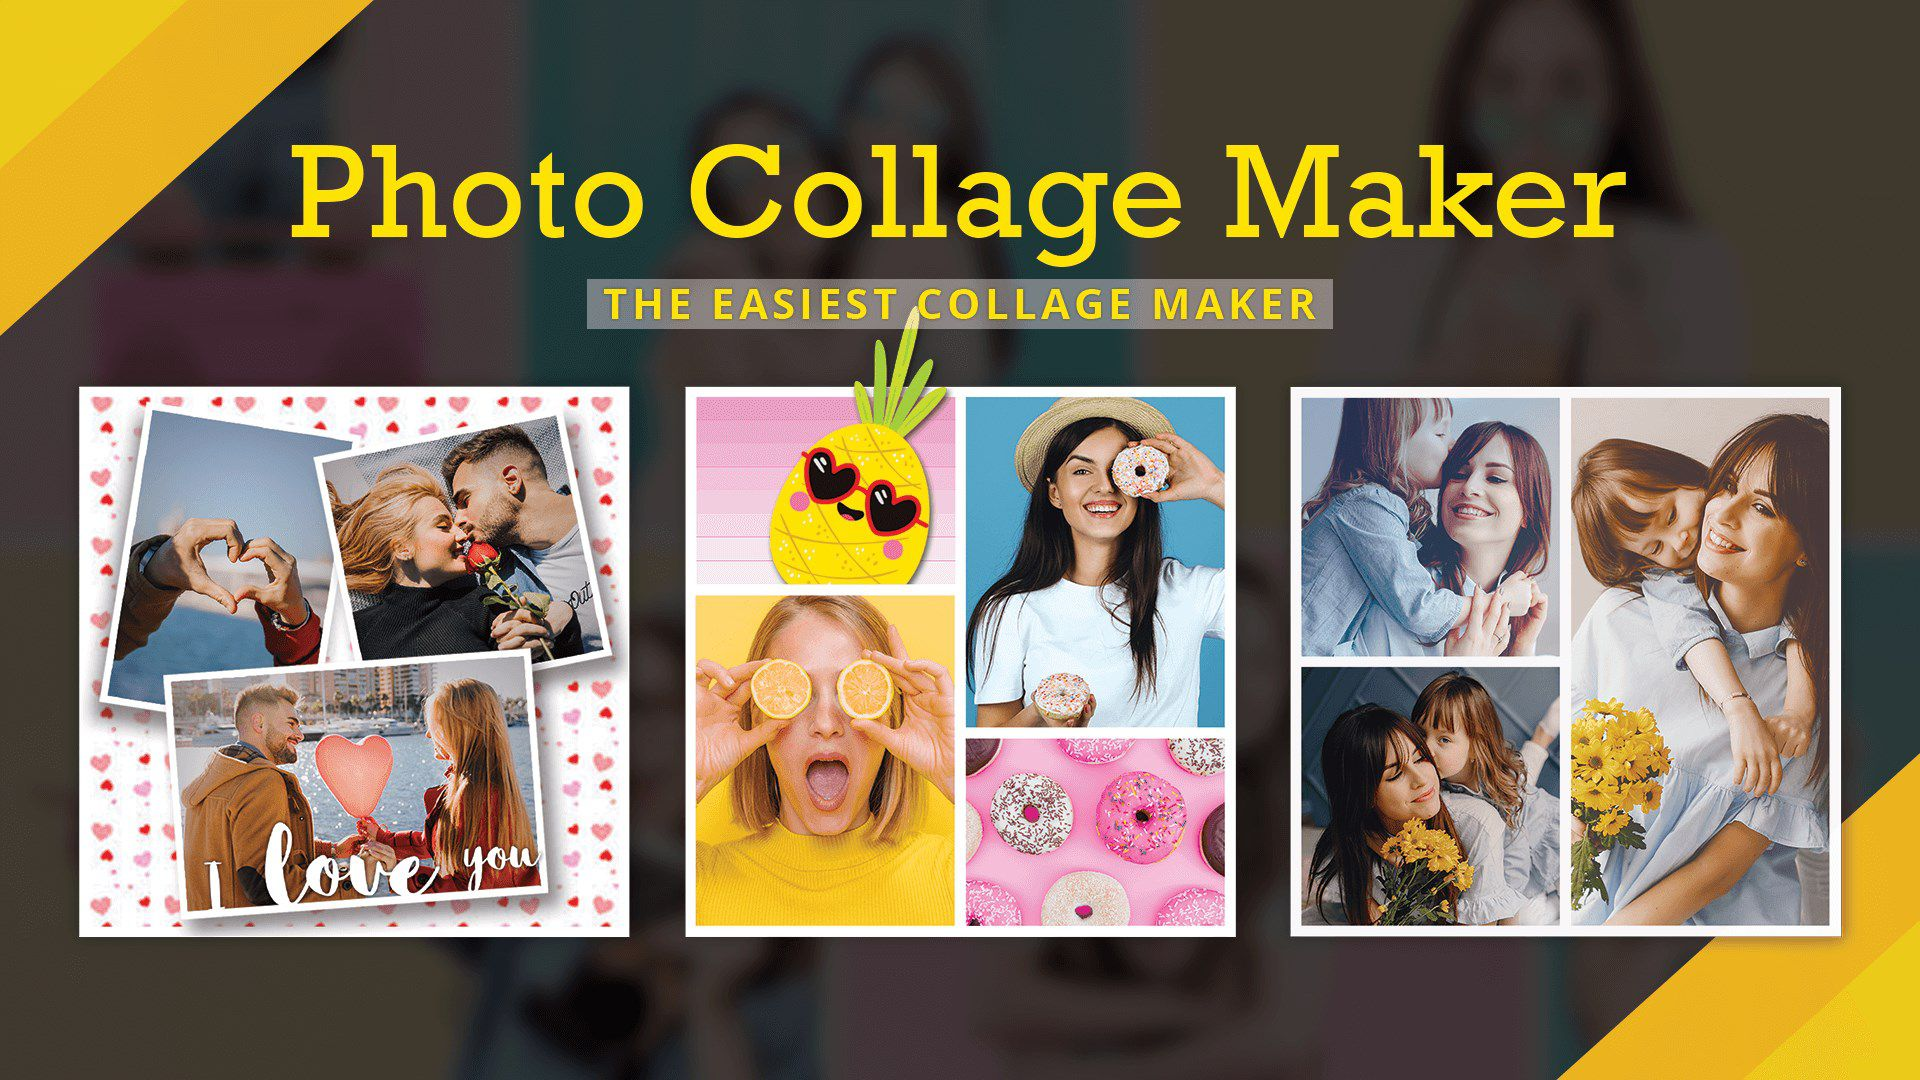 001 Archaicawful Free Photo Collage Template Download Idea  Picture Psd PowerpointFull